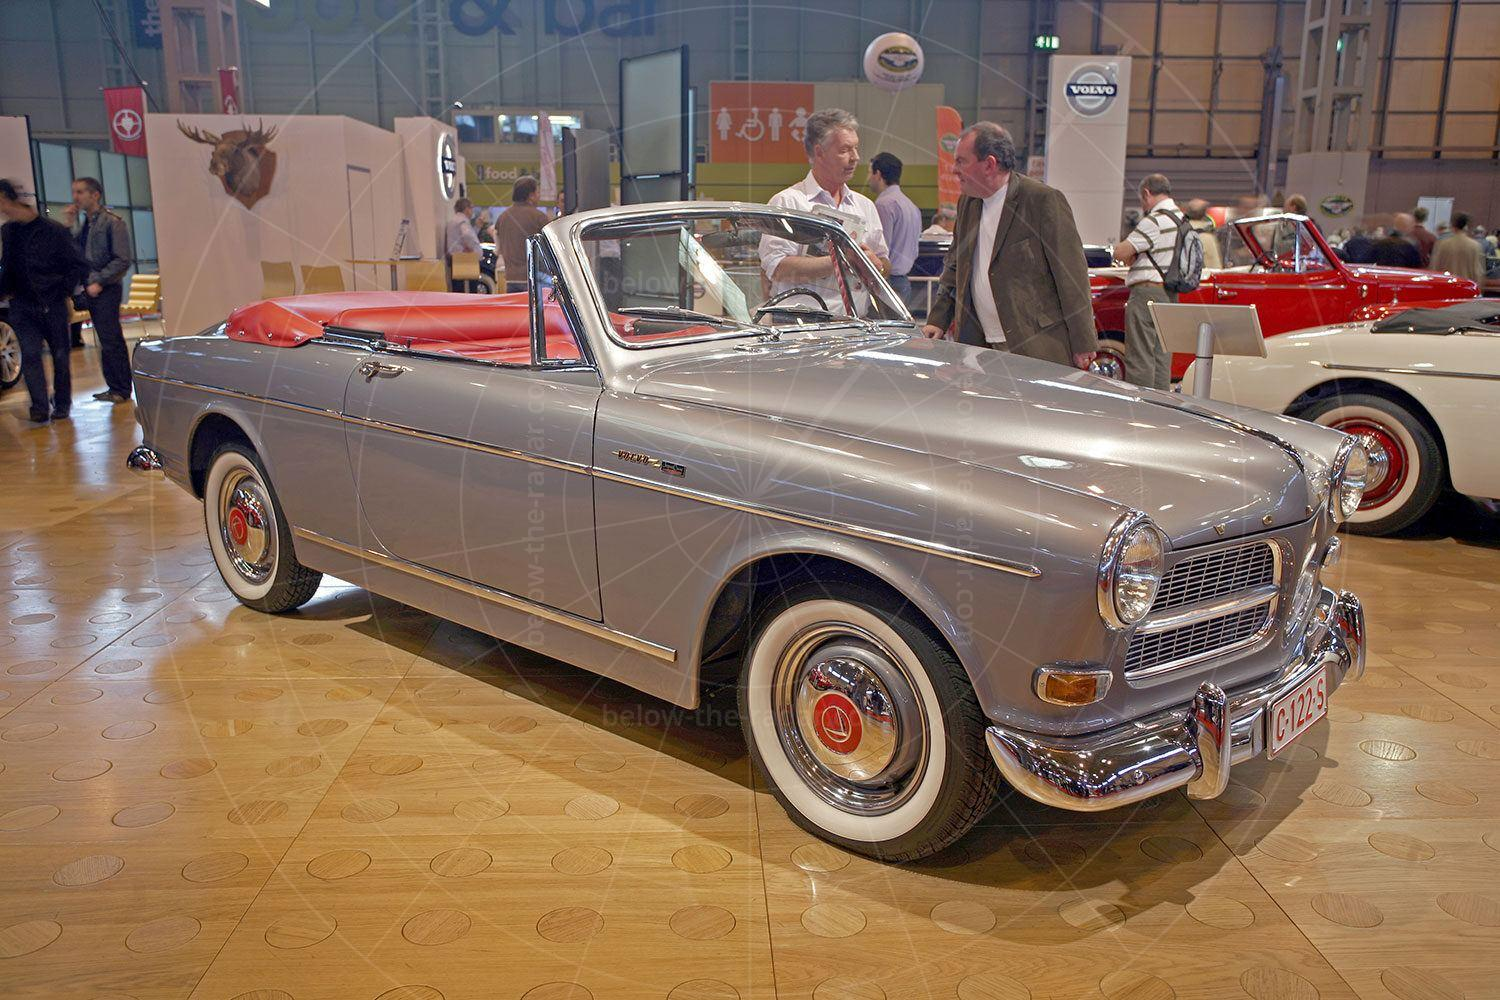 Volvo Amazon cabriolet by Jacques Coune Pic: magiccarpics.co.uk | Volvo Amazon cabriolet by Jacques Coune